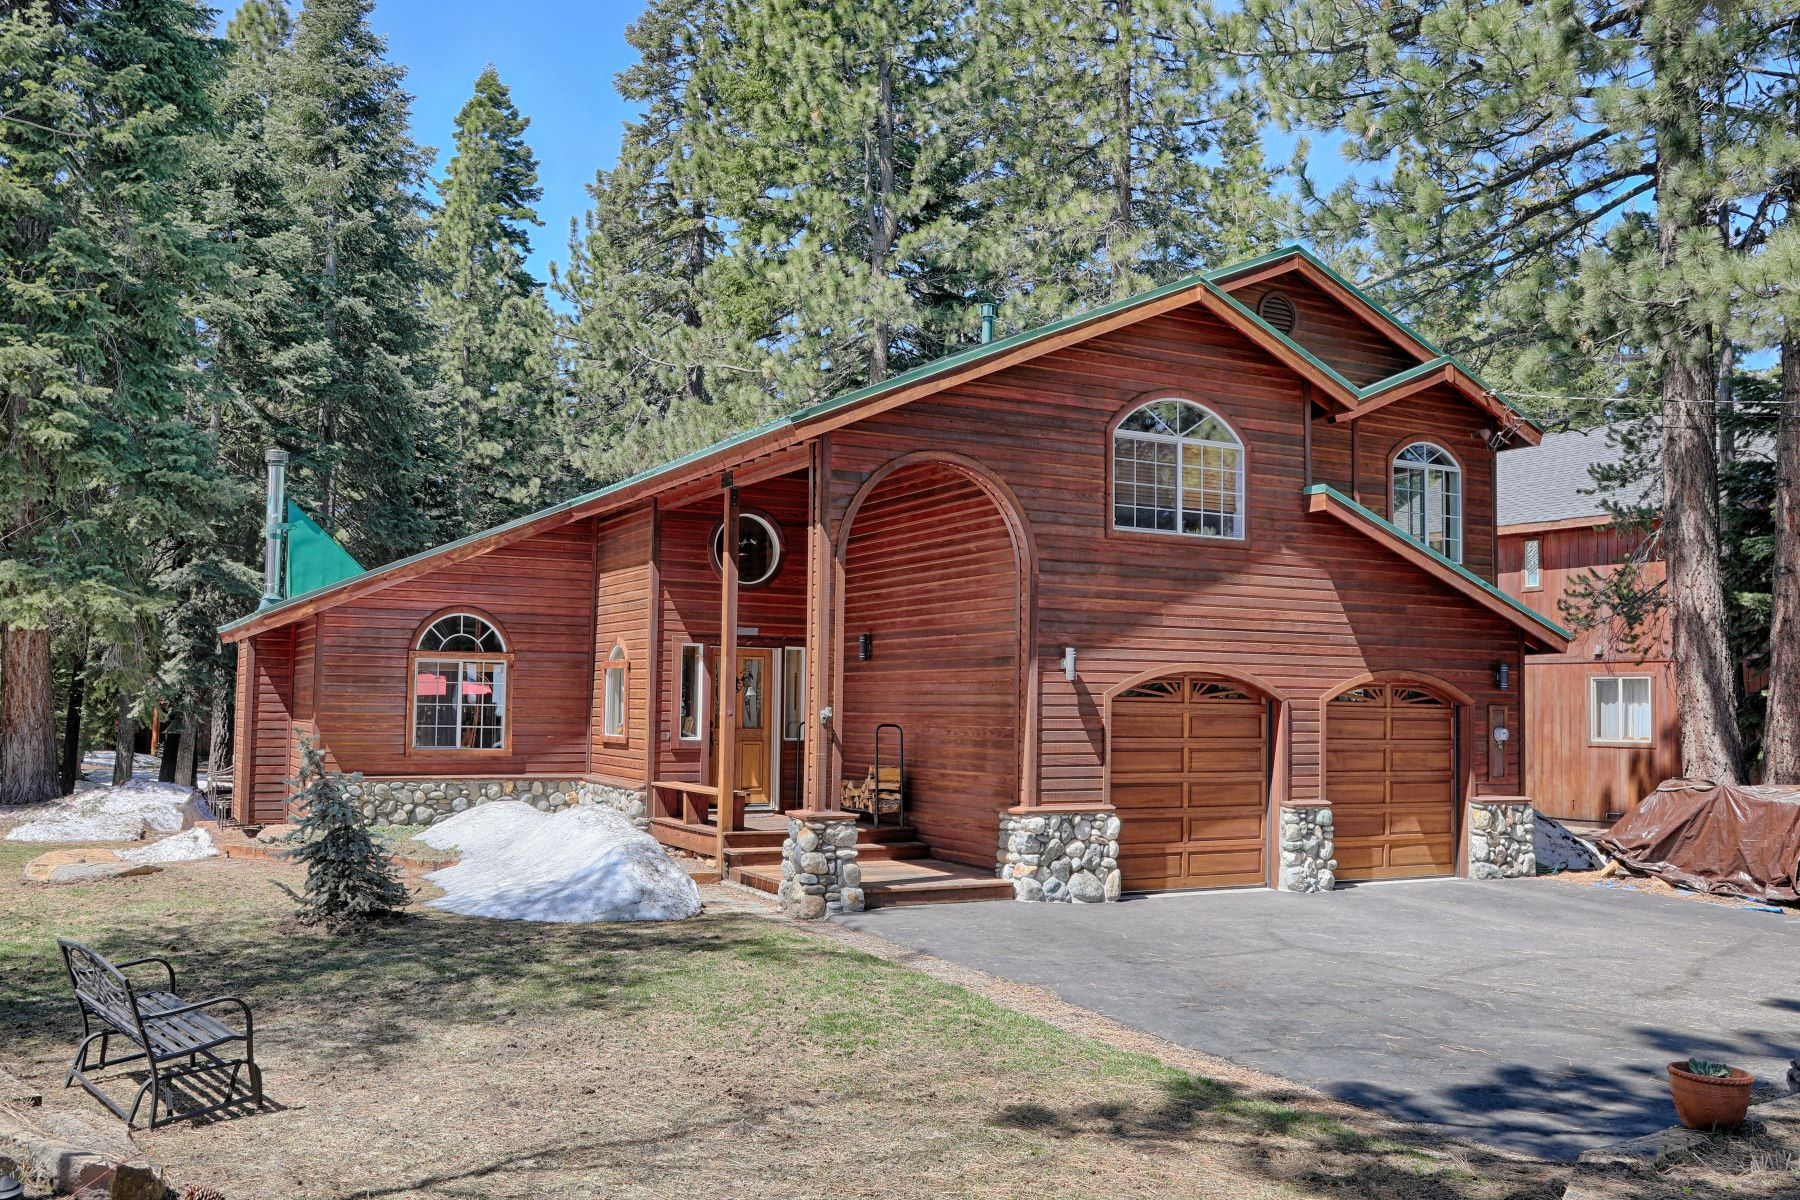 Additional photo for property listing at 14630 Tyrol Road, Truckee, CA, 96161 14630 Tyrol Road Truckee, California 96161 United States